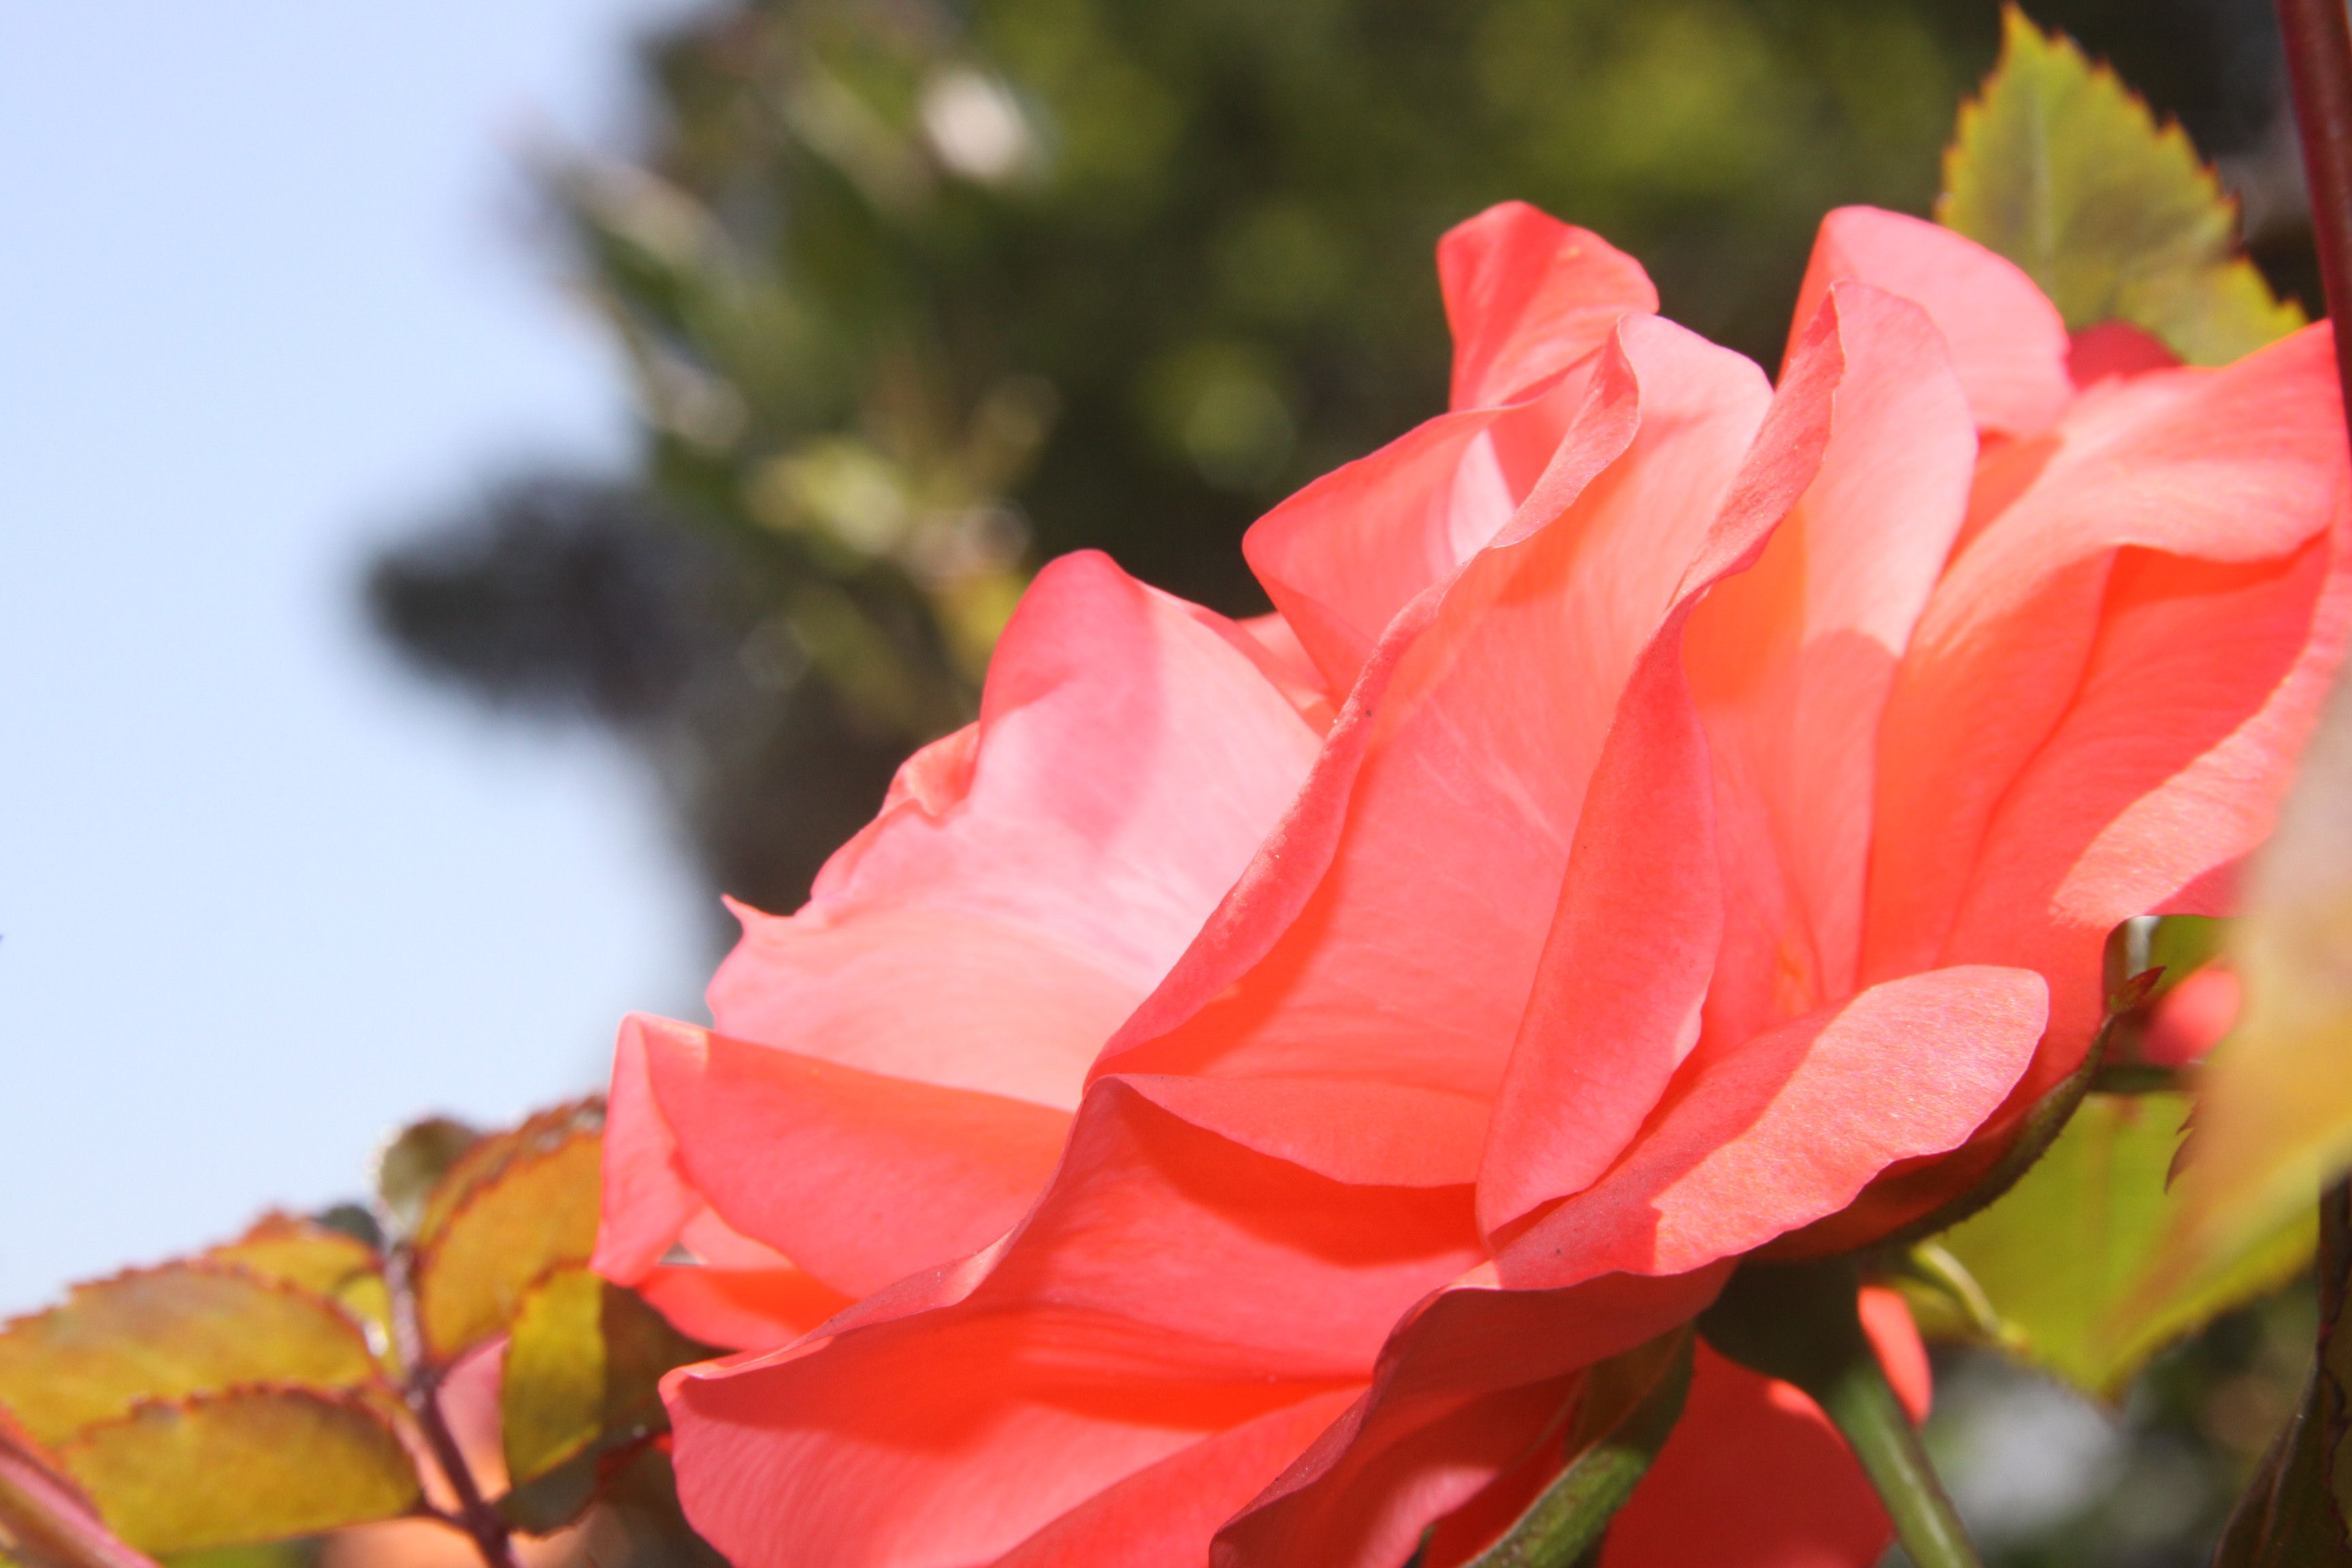 Rose in bloom, Balboa Park